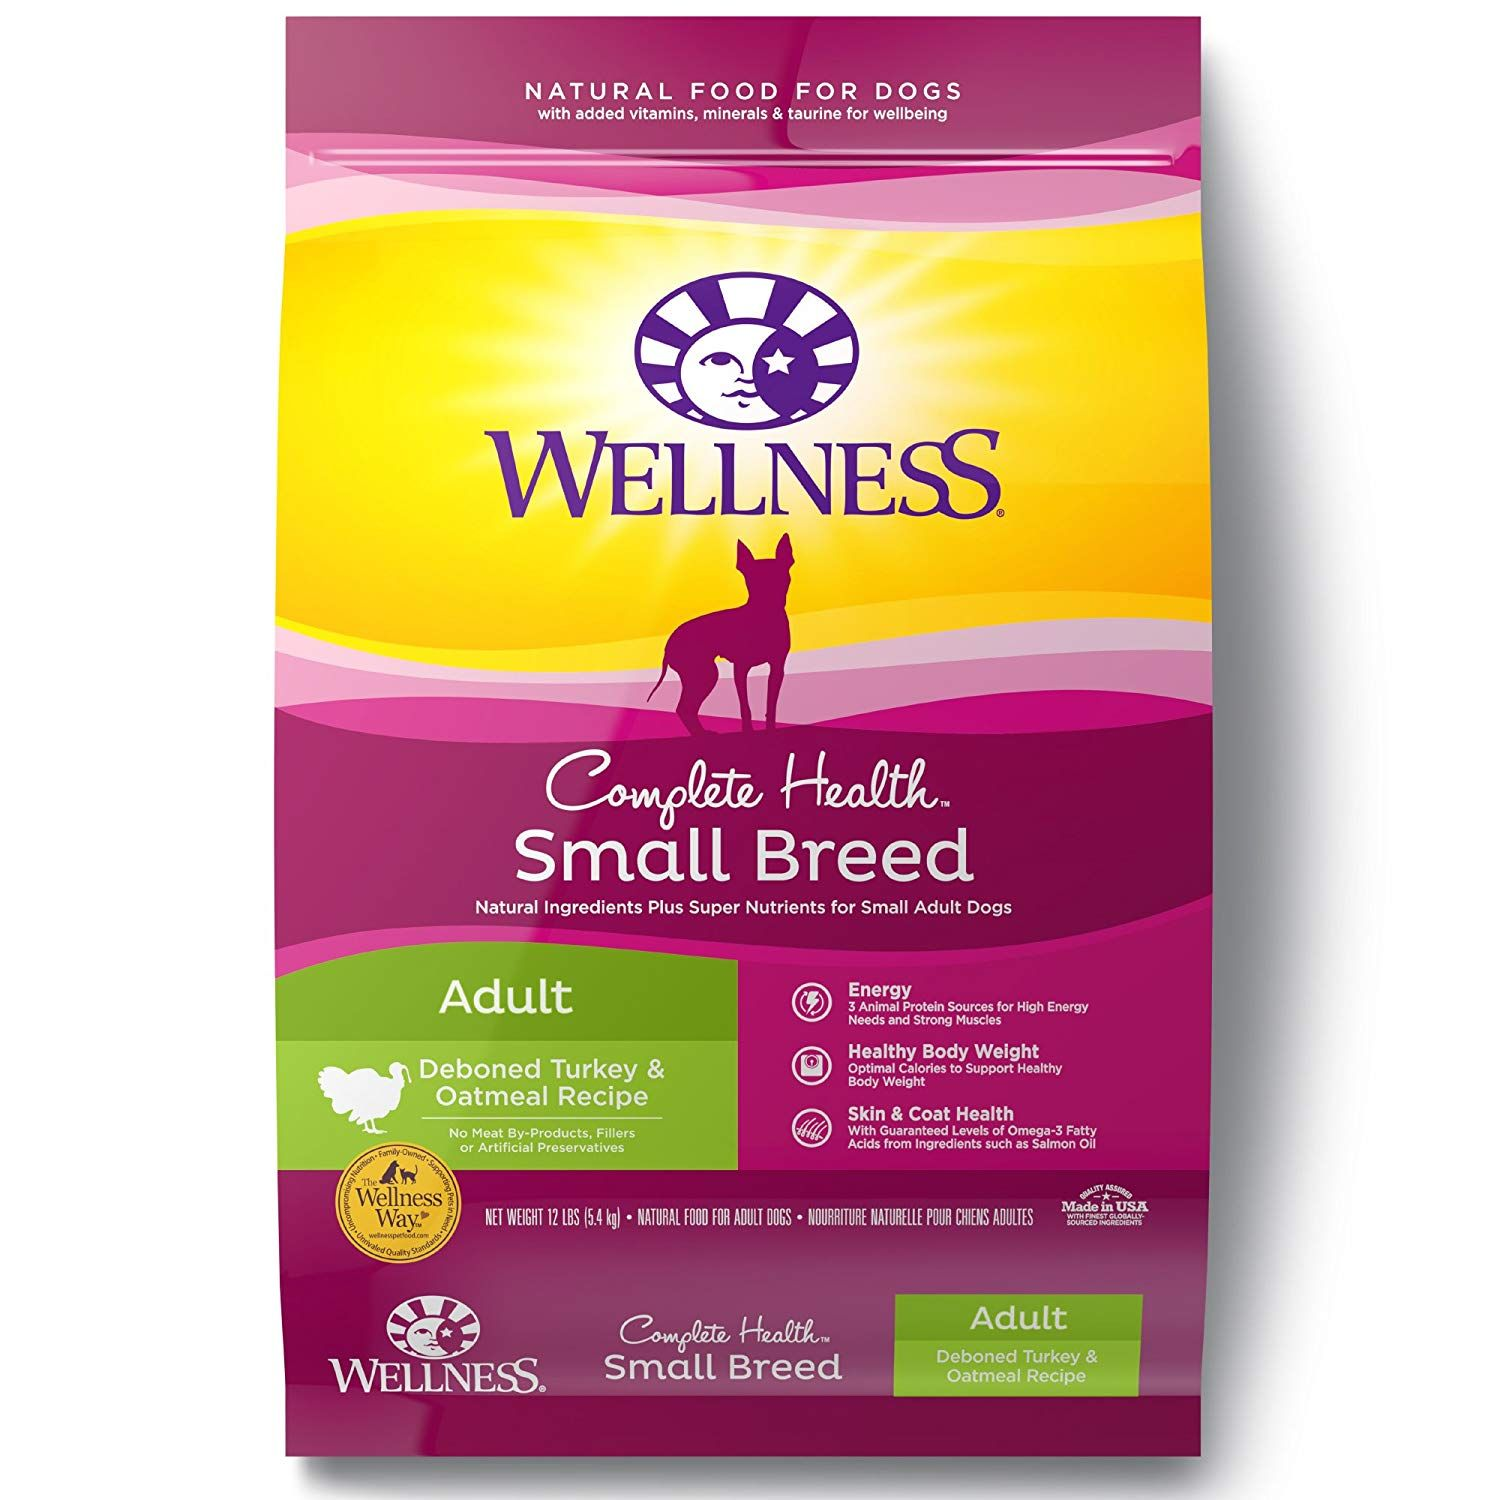 Complete Health Complete And Balanced Everyday Nutrition For Your Small Breed Dog Small Breed Formula Sma Dog Food Recipes Small Breed Dog Food Best Dog Food